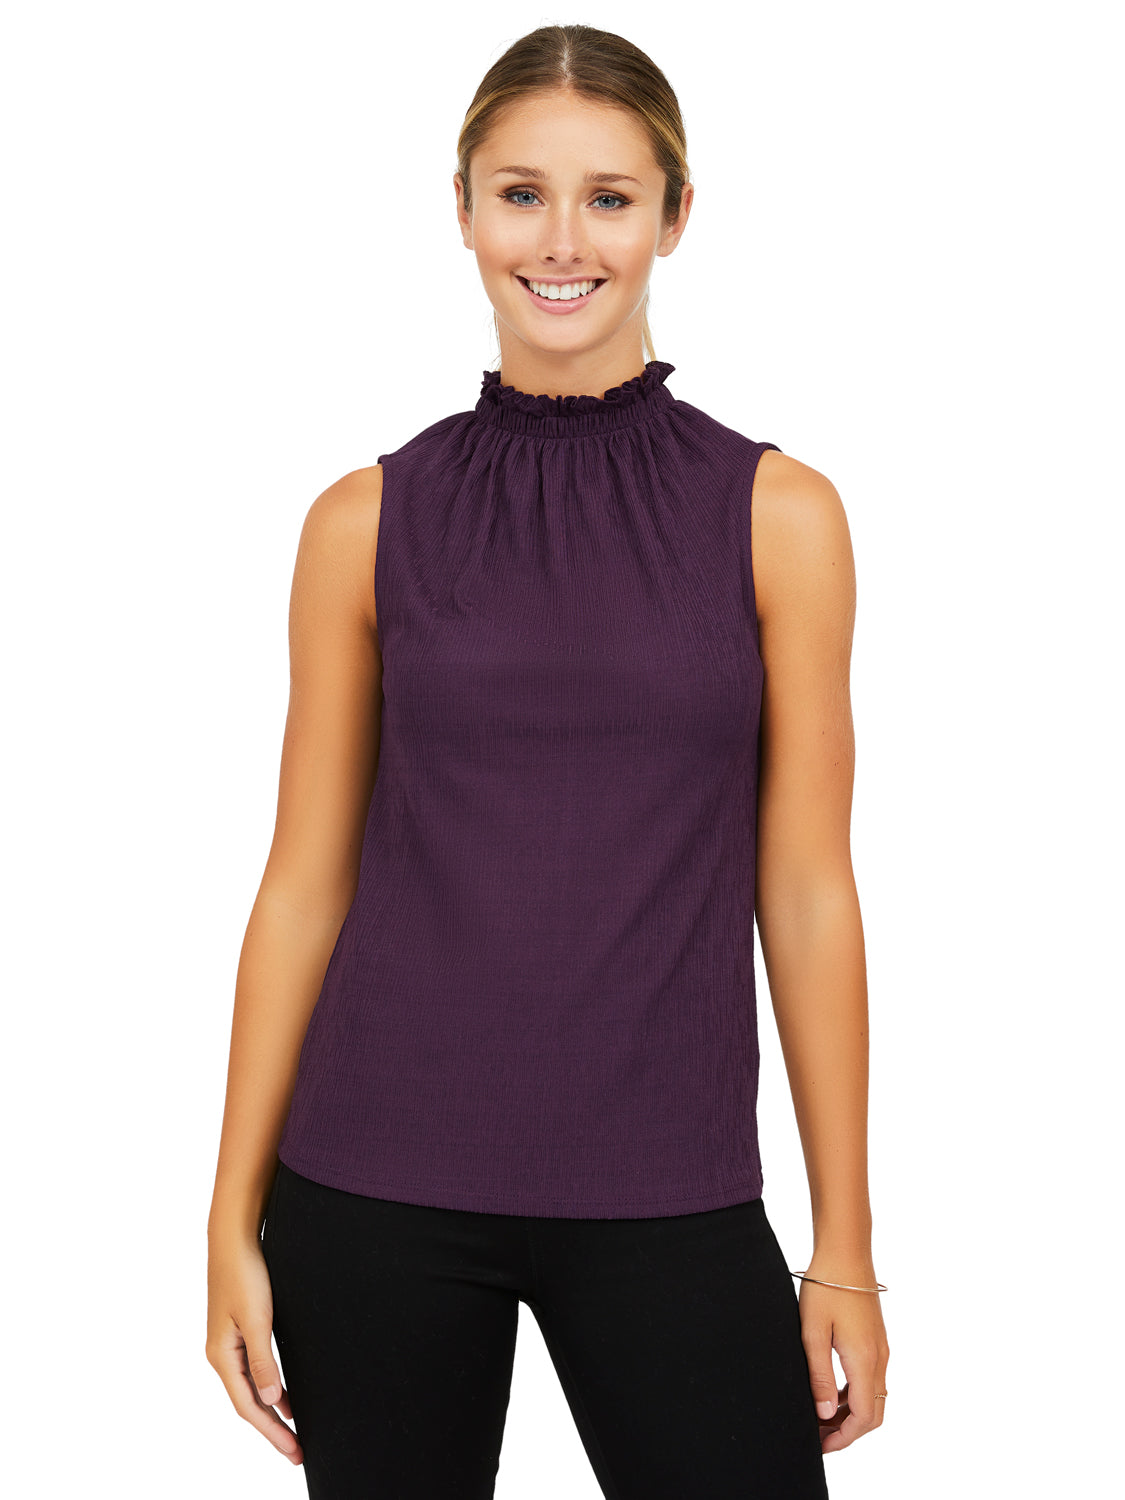 Sleeveless Onion Skin Rib Knit Top